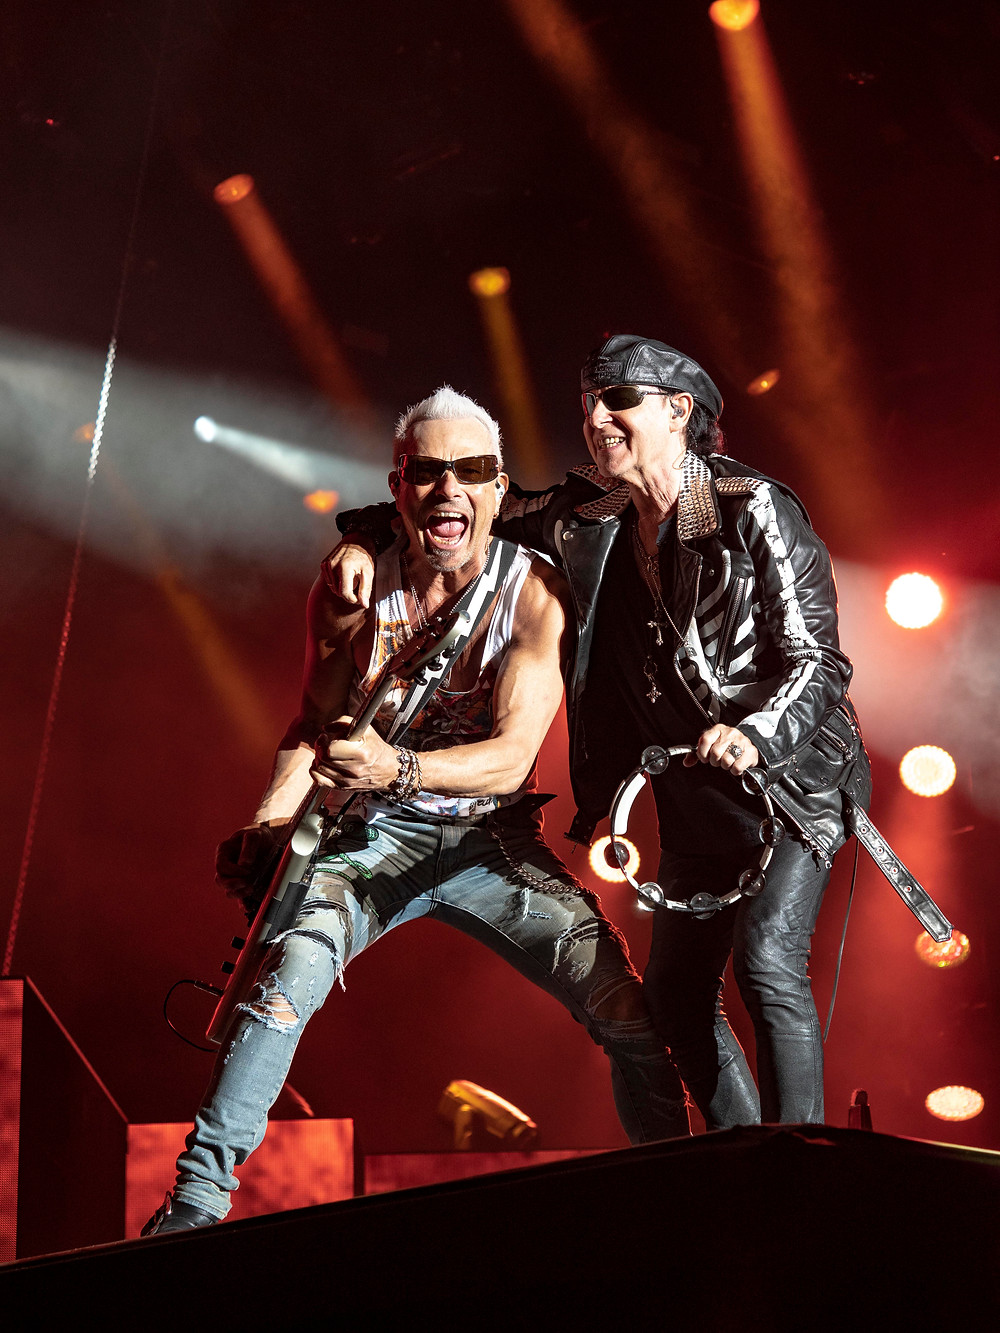 Music Photography, Scorpions at Bloodstock 2019